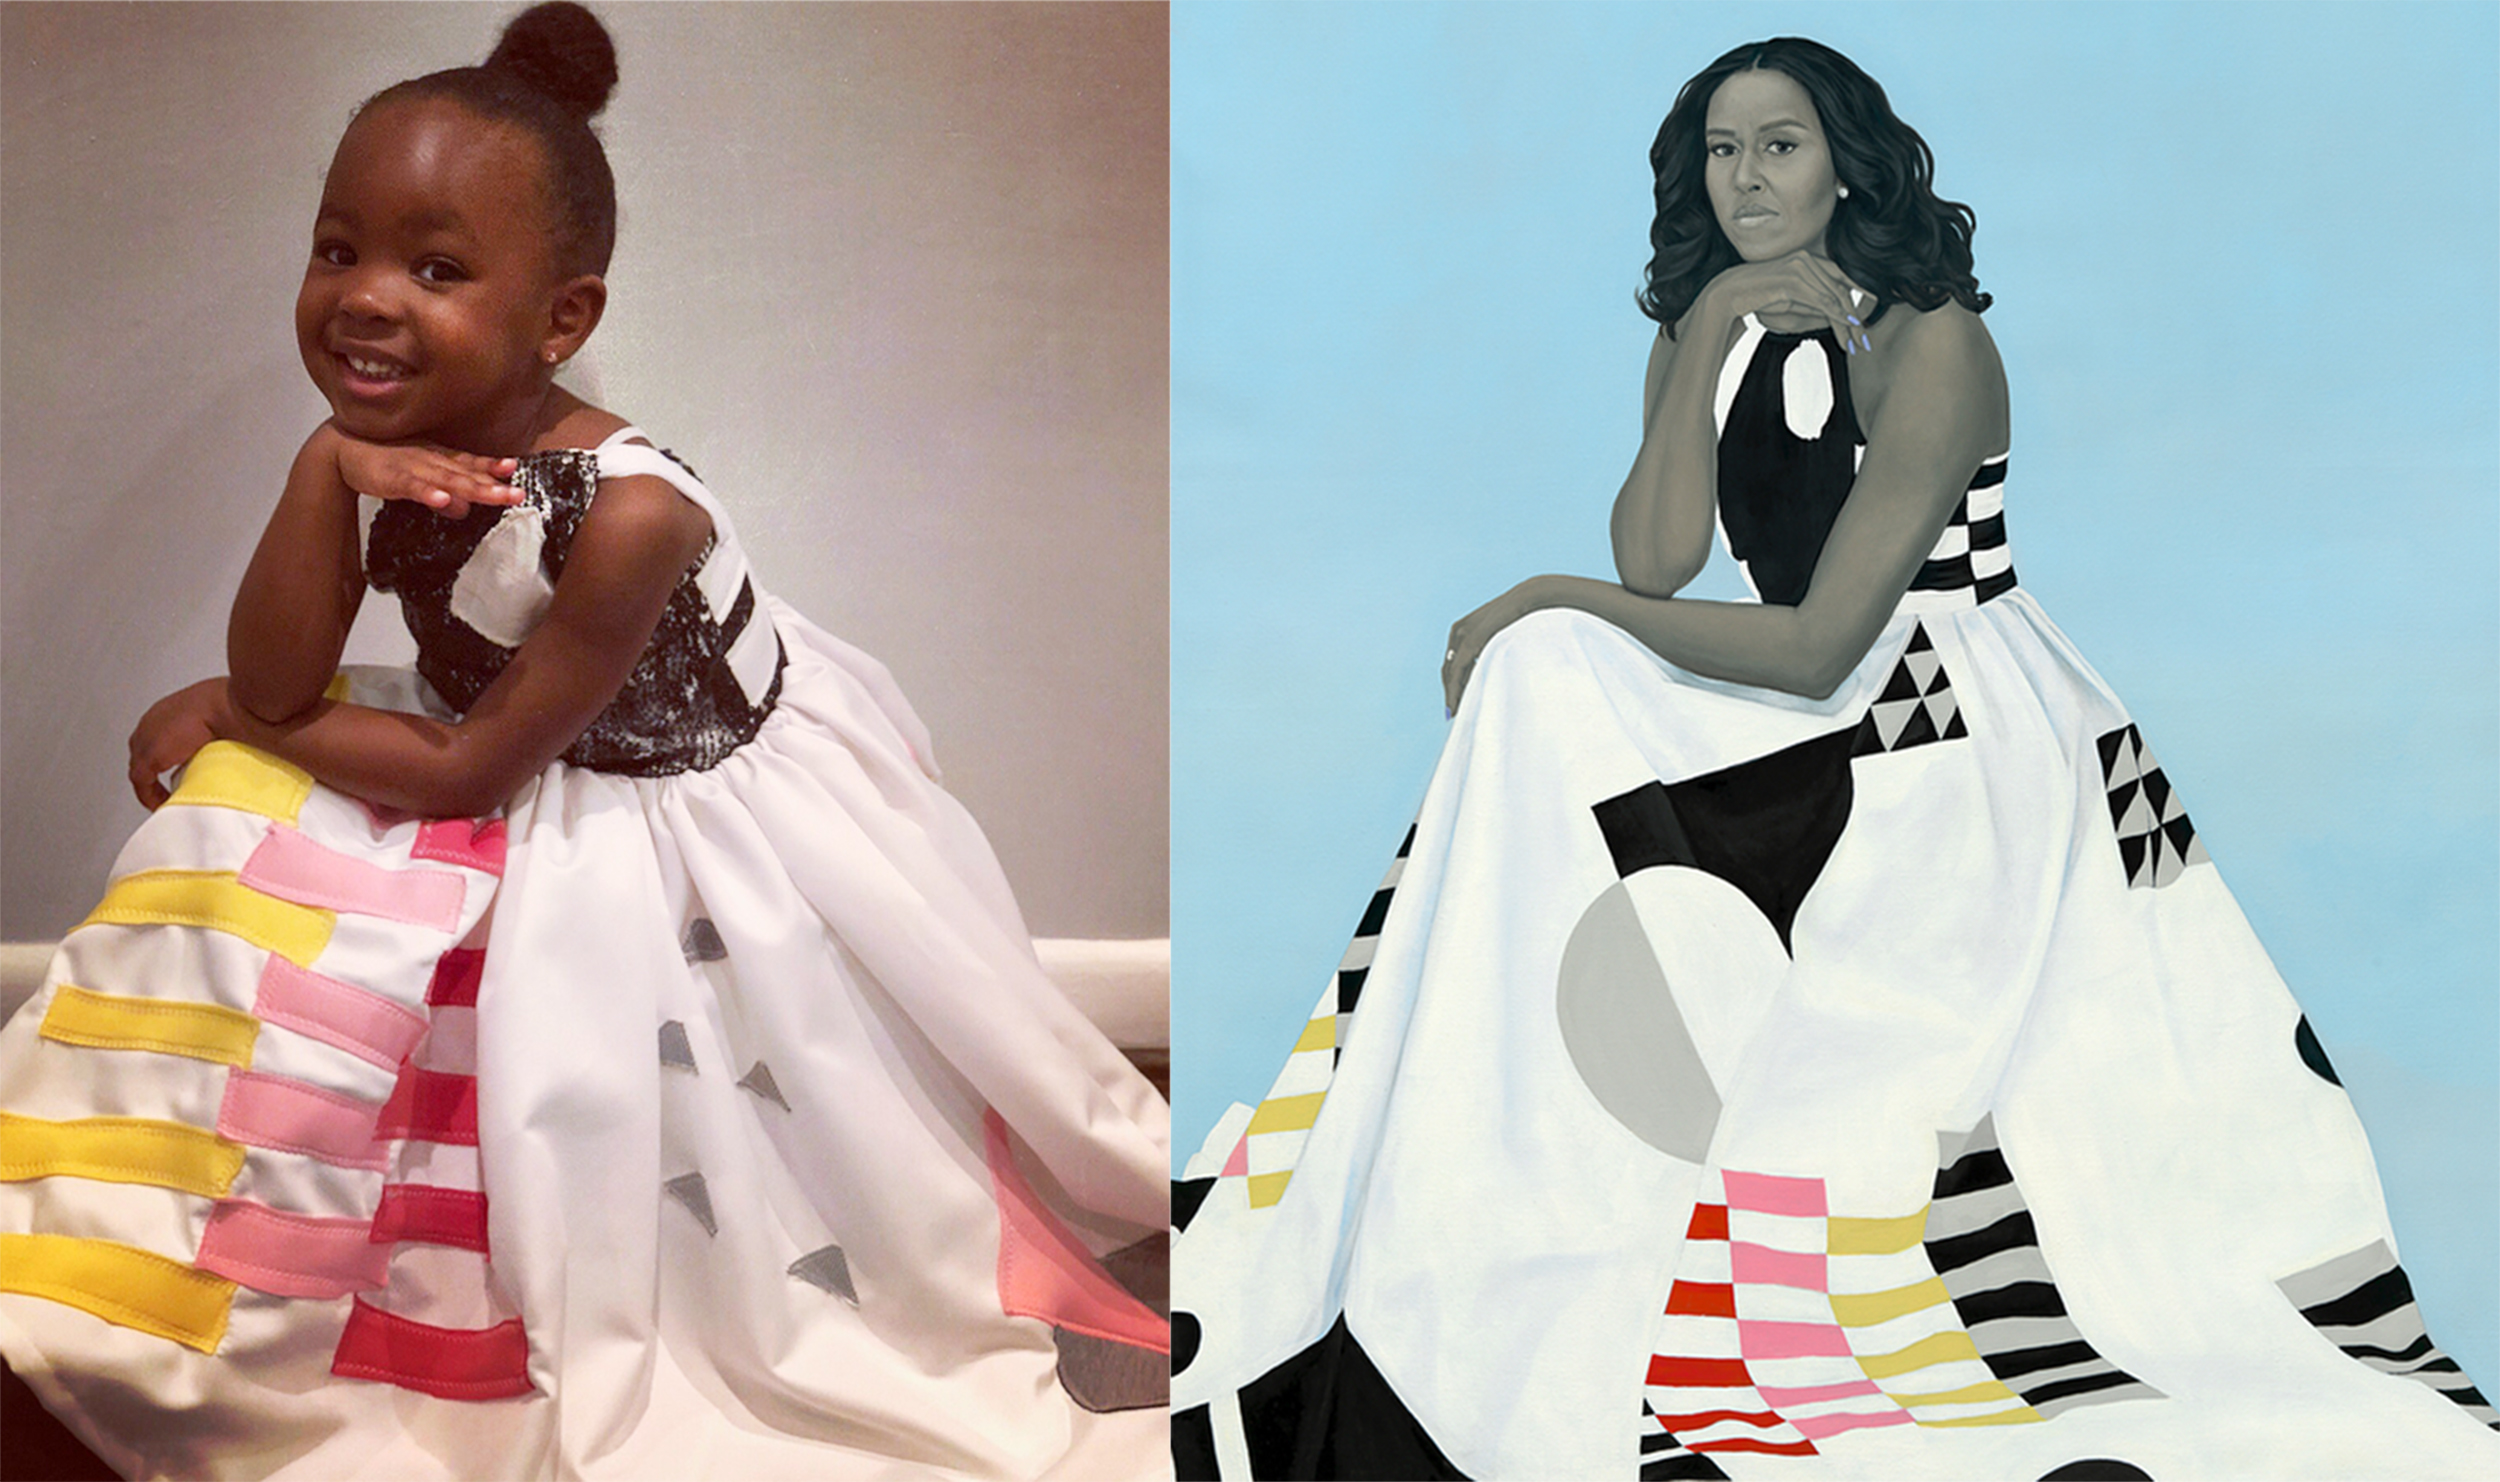 little girl entrancedmichelle obama portrait returns the favor